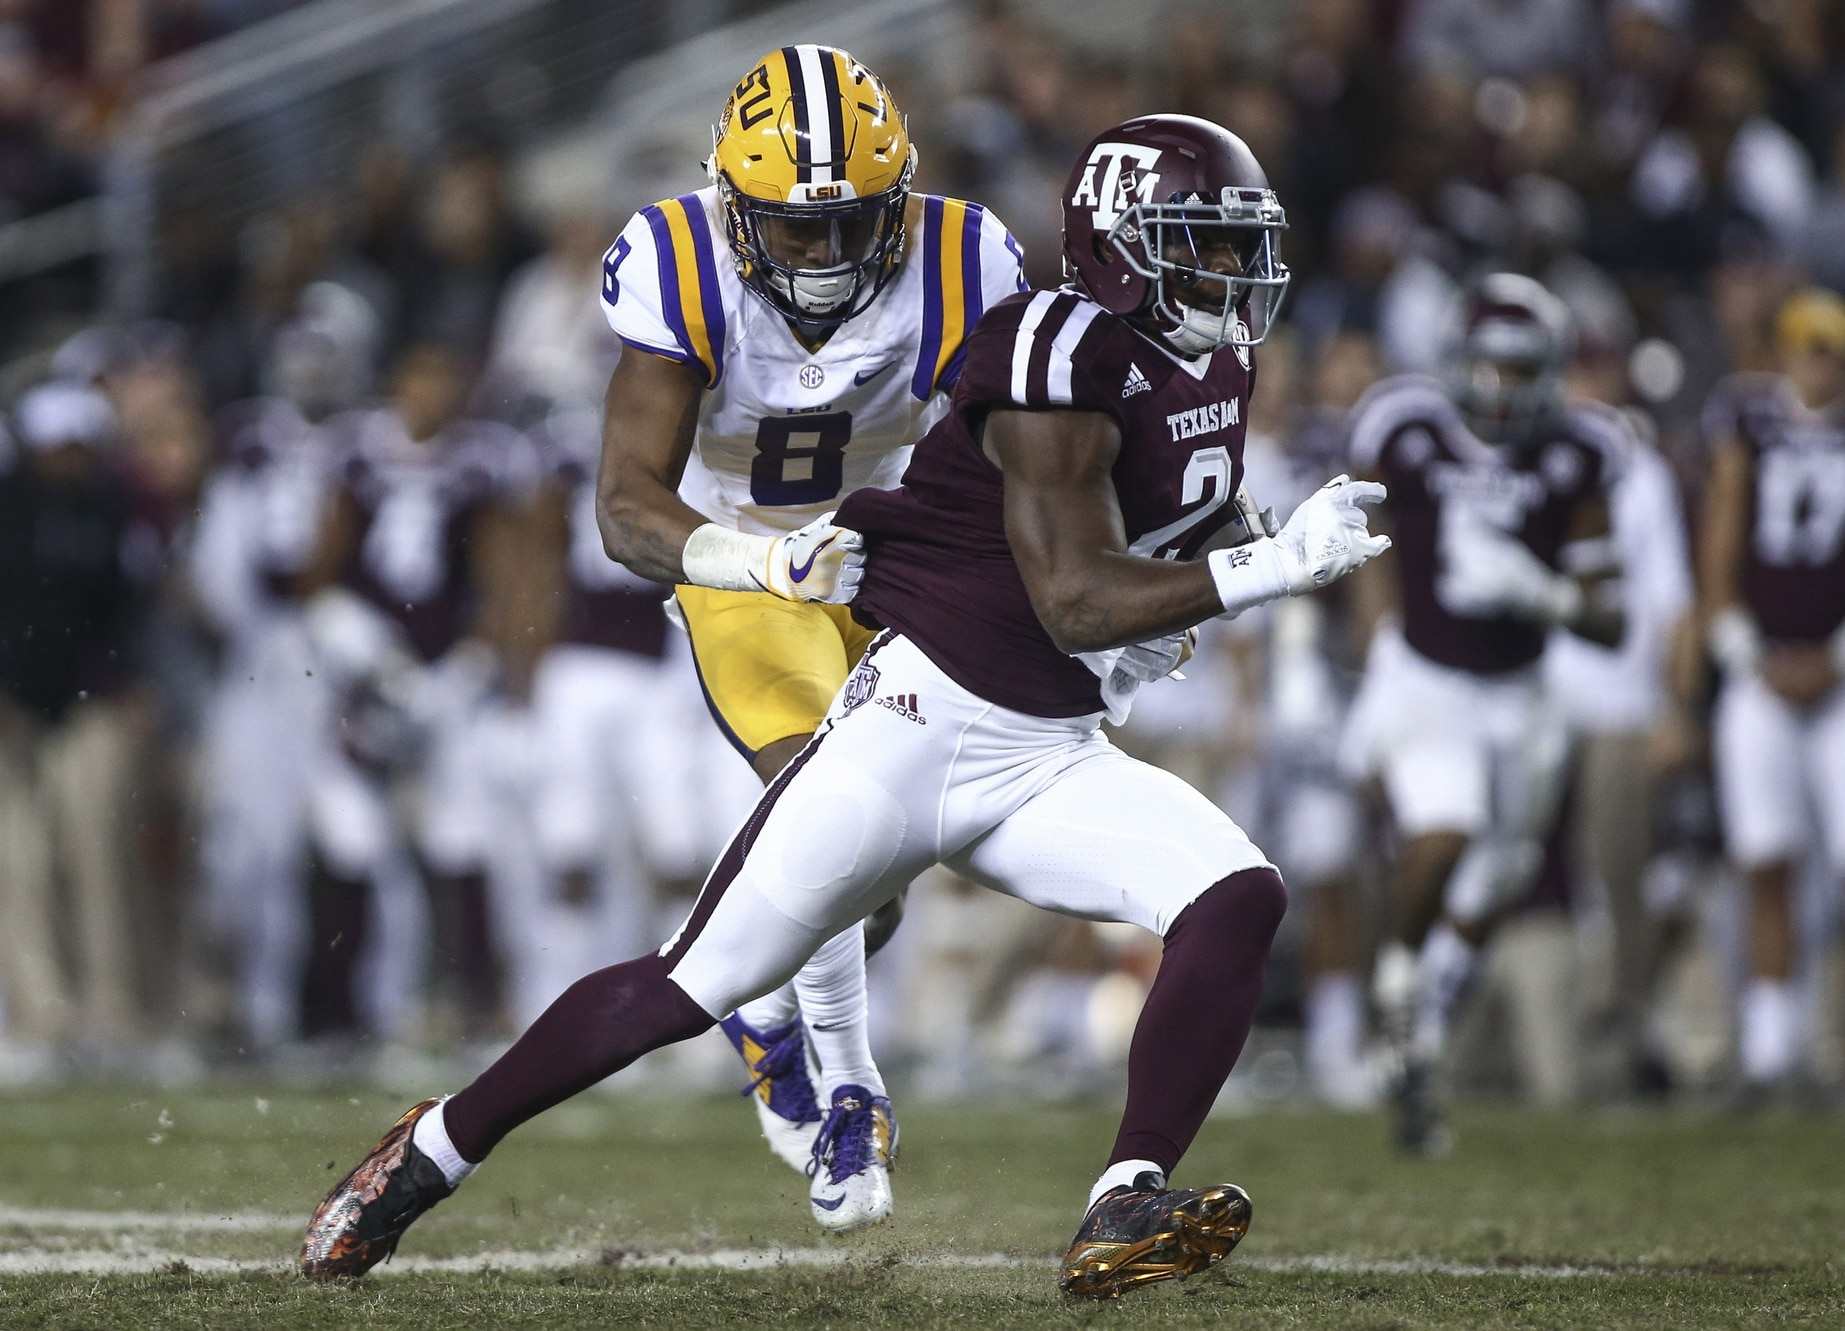 Former four-star LSU recruit Saivion Smith has decided to transfer after just one season in Baton Rouge.